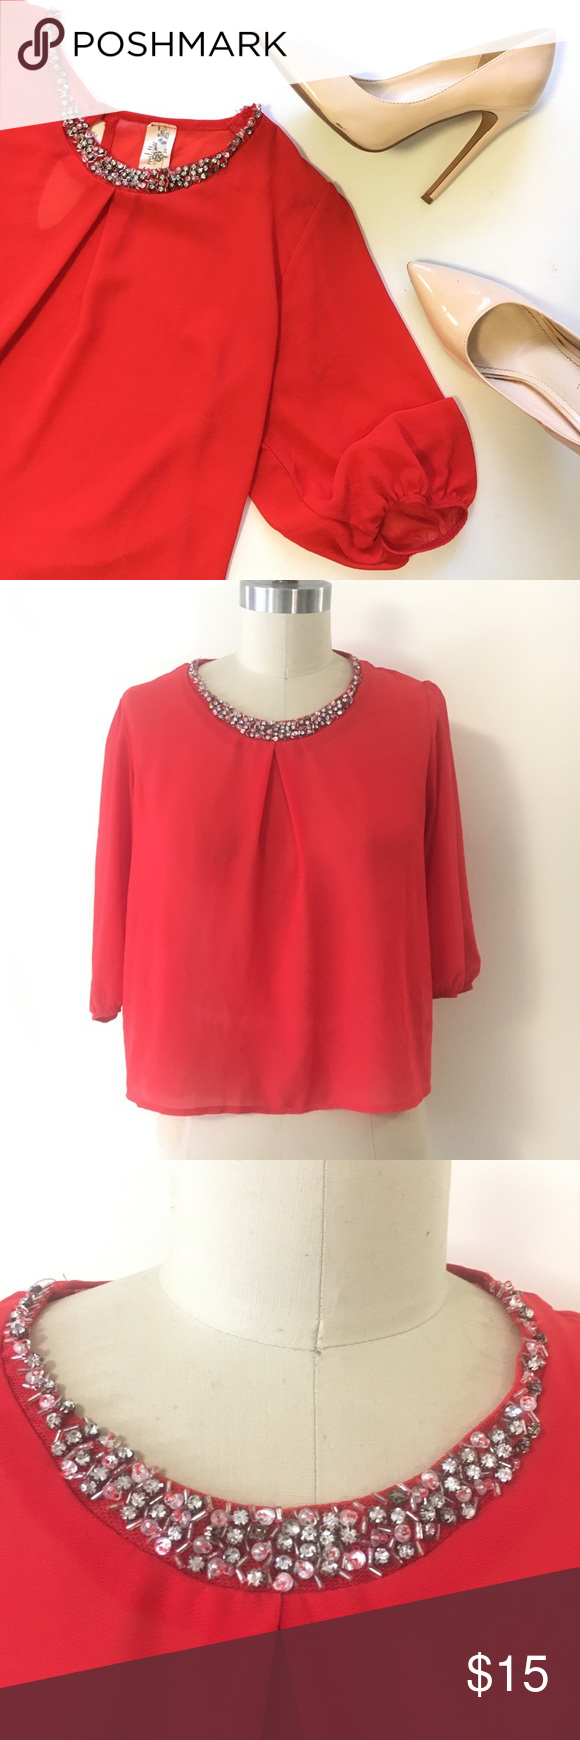 Red cute crop blouse sz M Super cute blouse in red. With rhinestone neckline. Tops Blouses